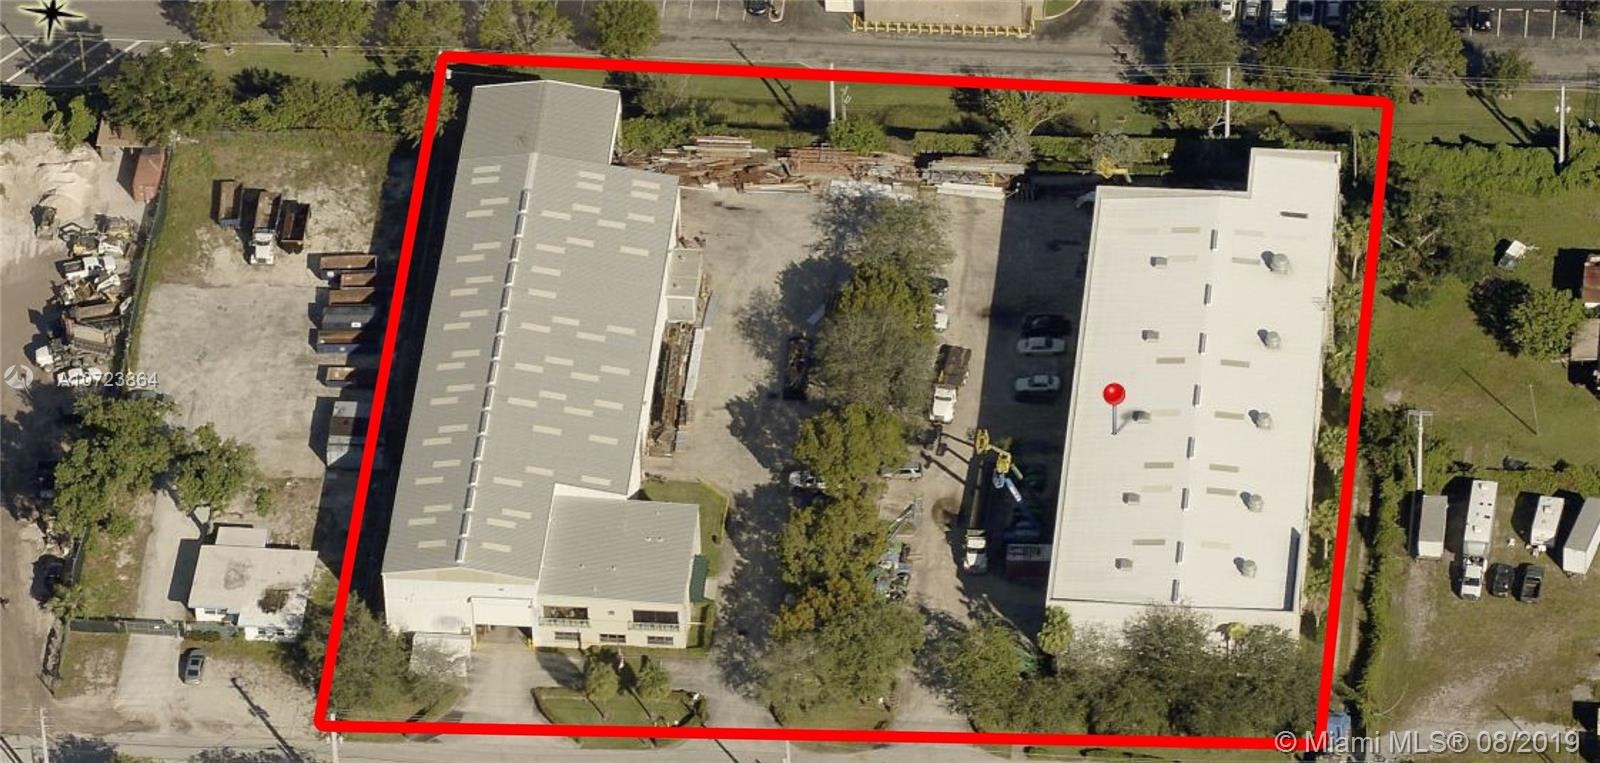 image #1 of property, 1861 1891 Nw 33rd Ct